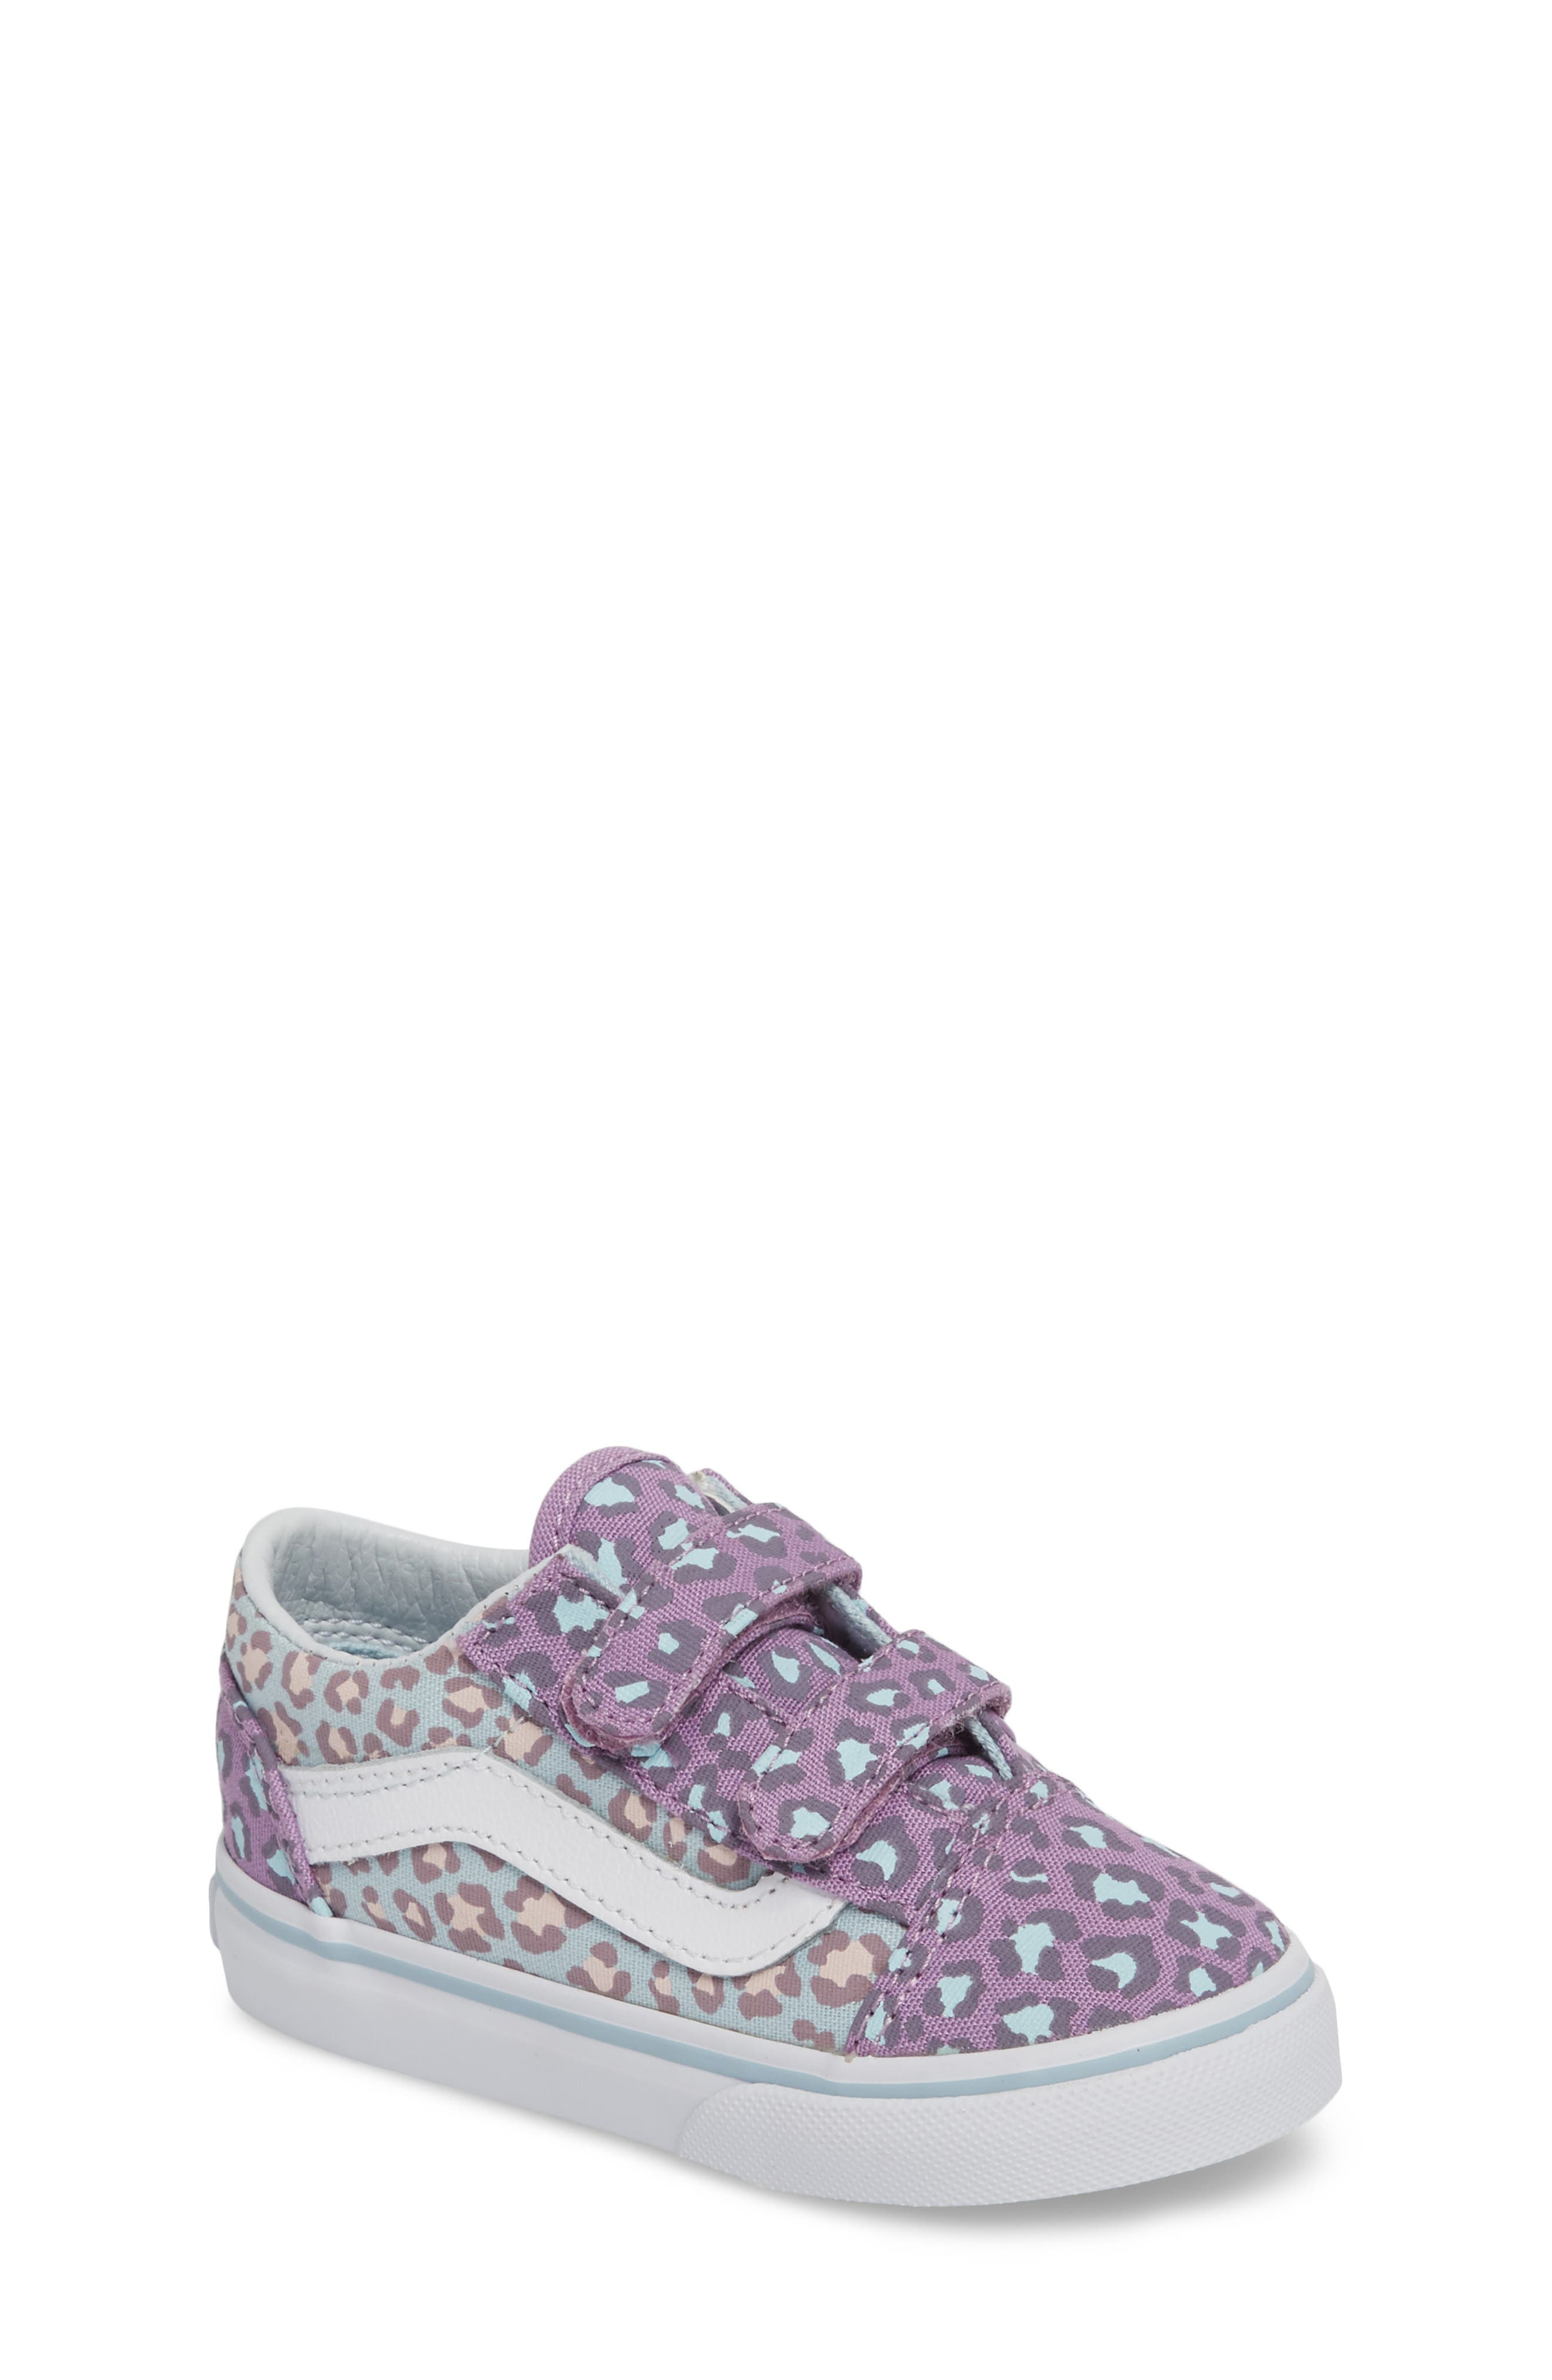 'Old Skool V' Sneaker,                         Main,                         color, Blue/ Orchid Leopard